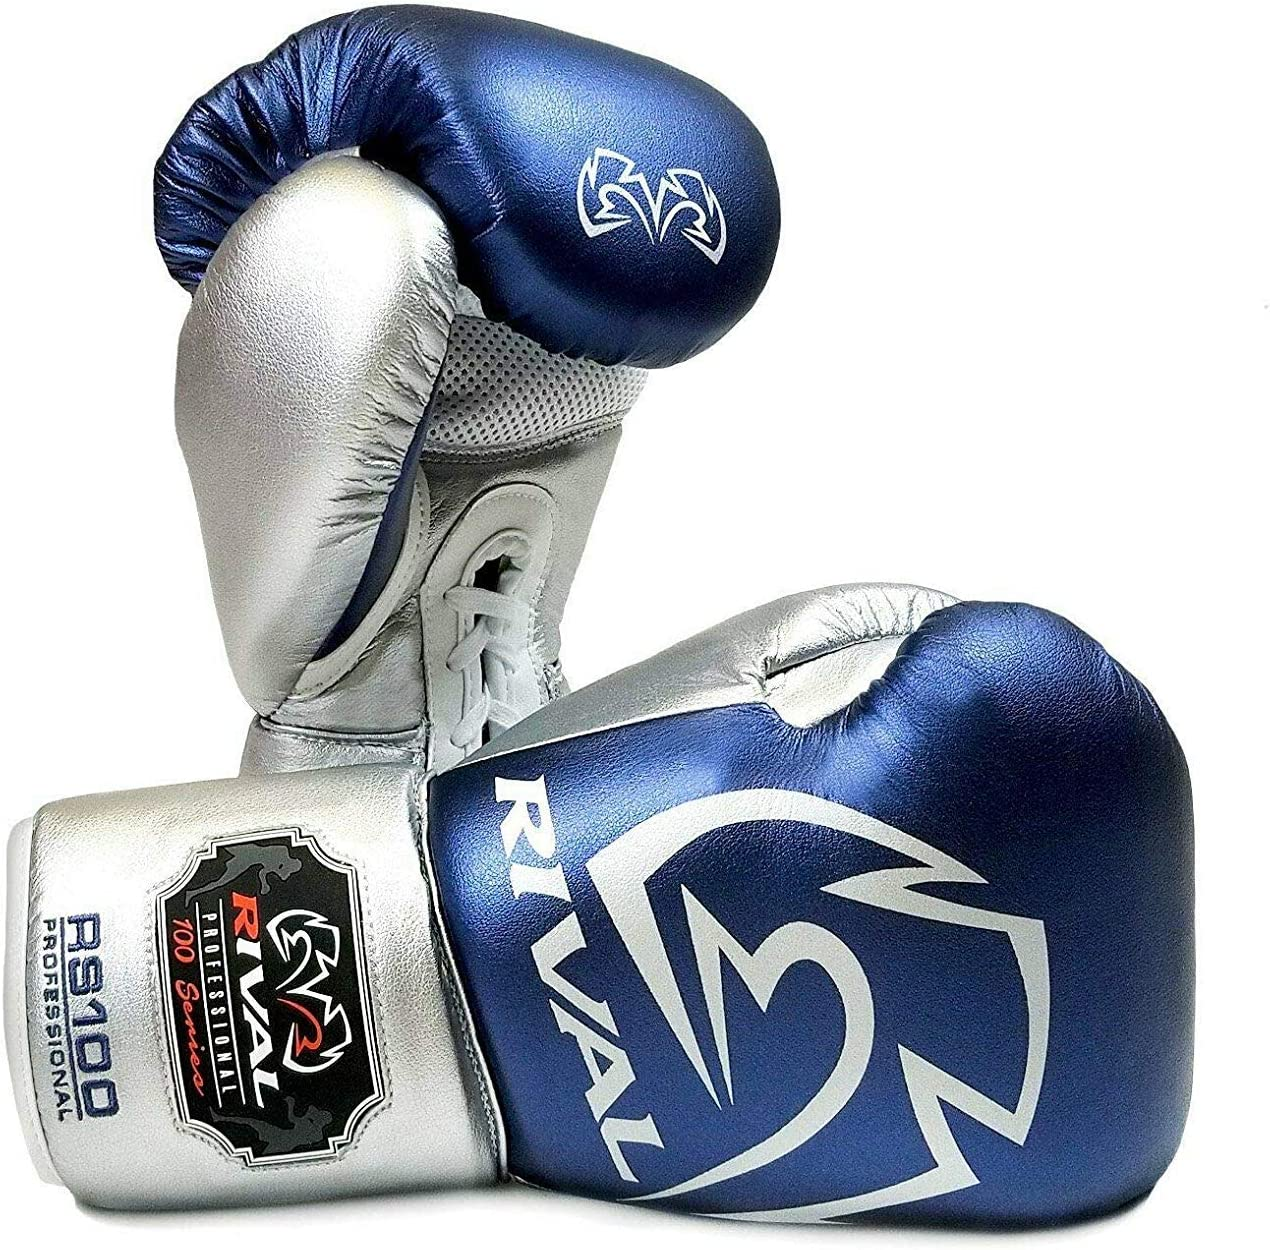 RIVAL RS100 Boxhandschuhe Blau Silber Training Sparring